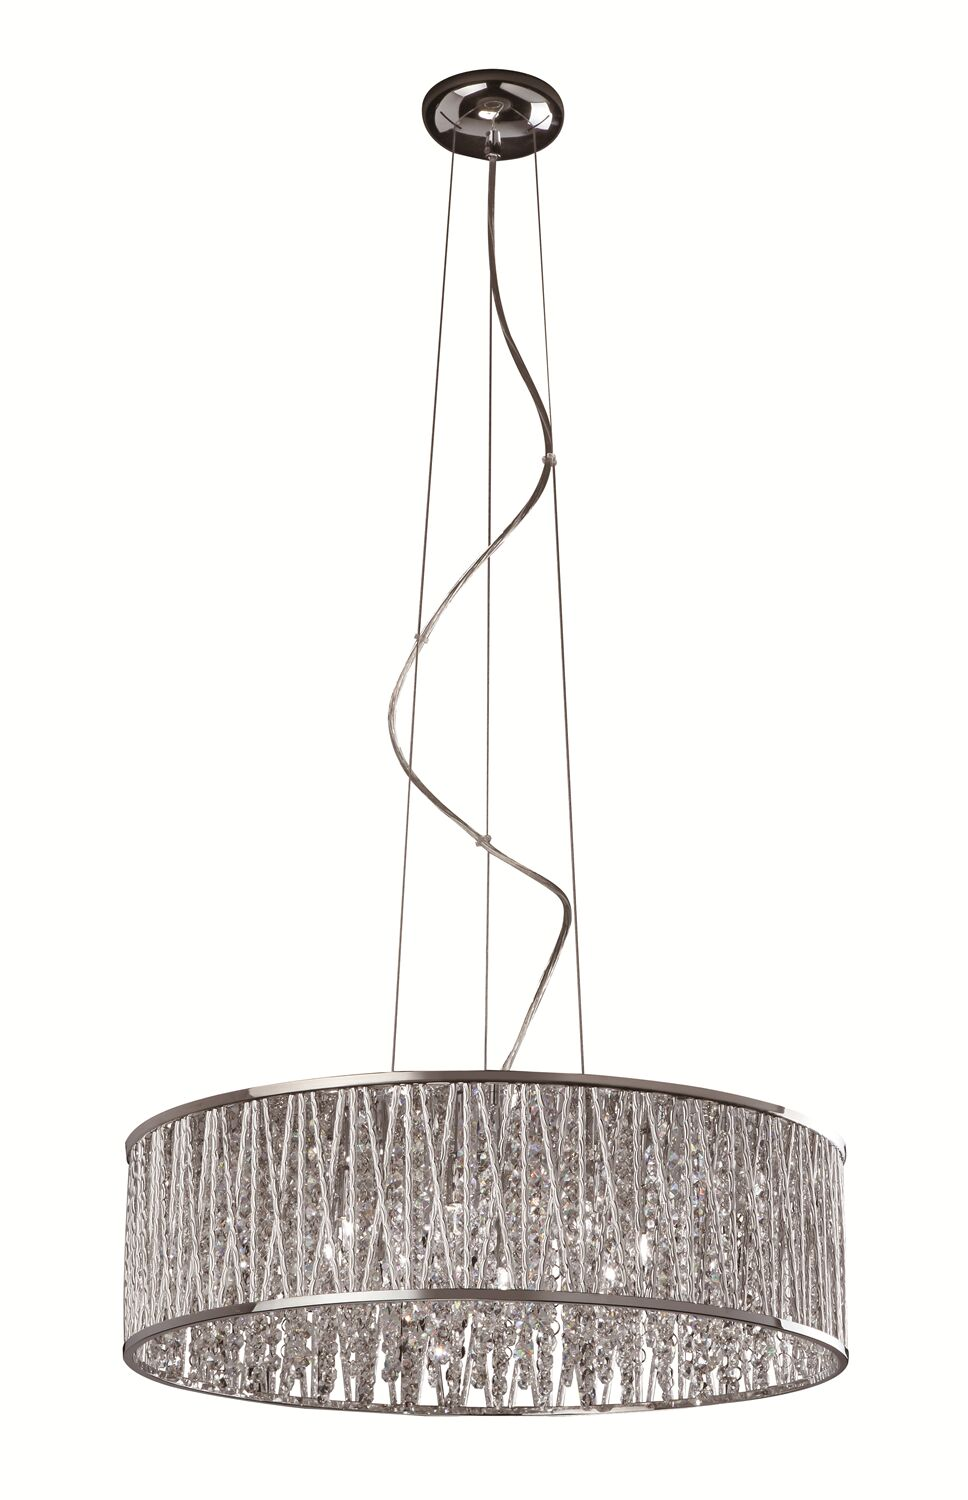 Trixie 8-Light Crystal Chandelier